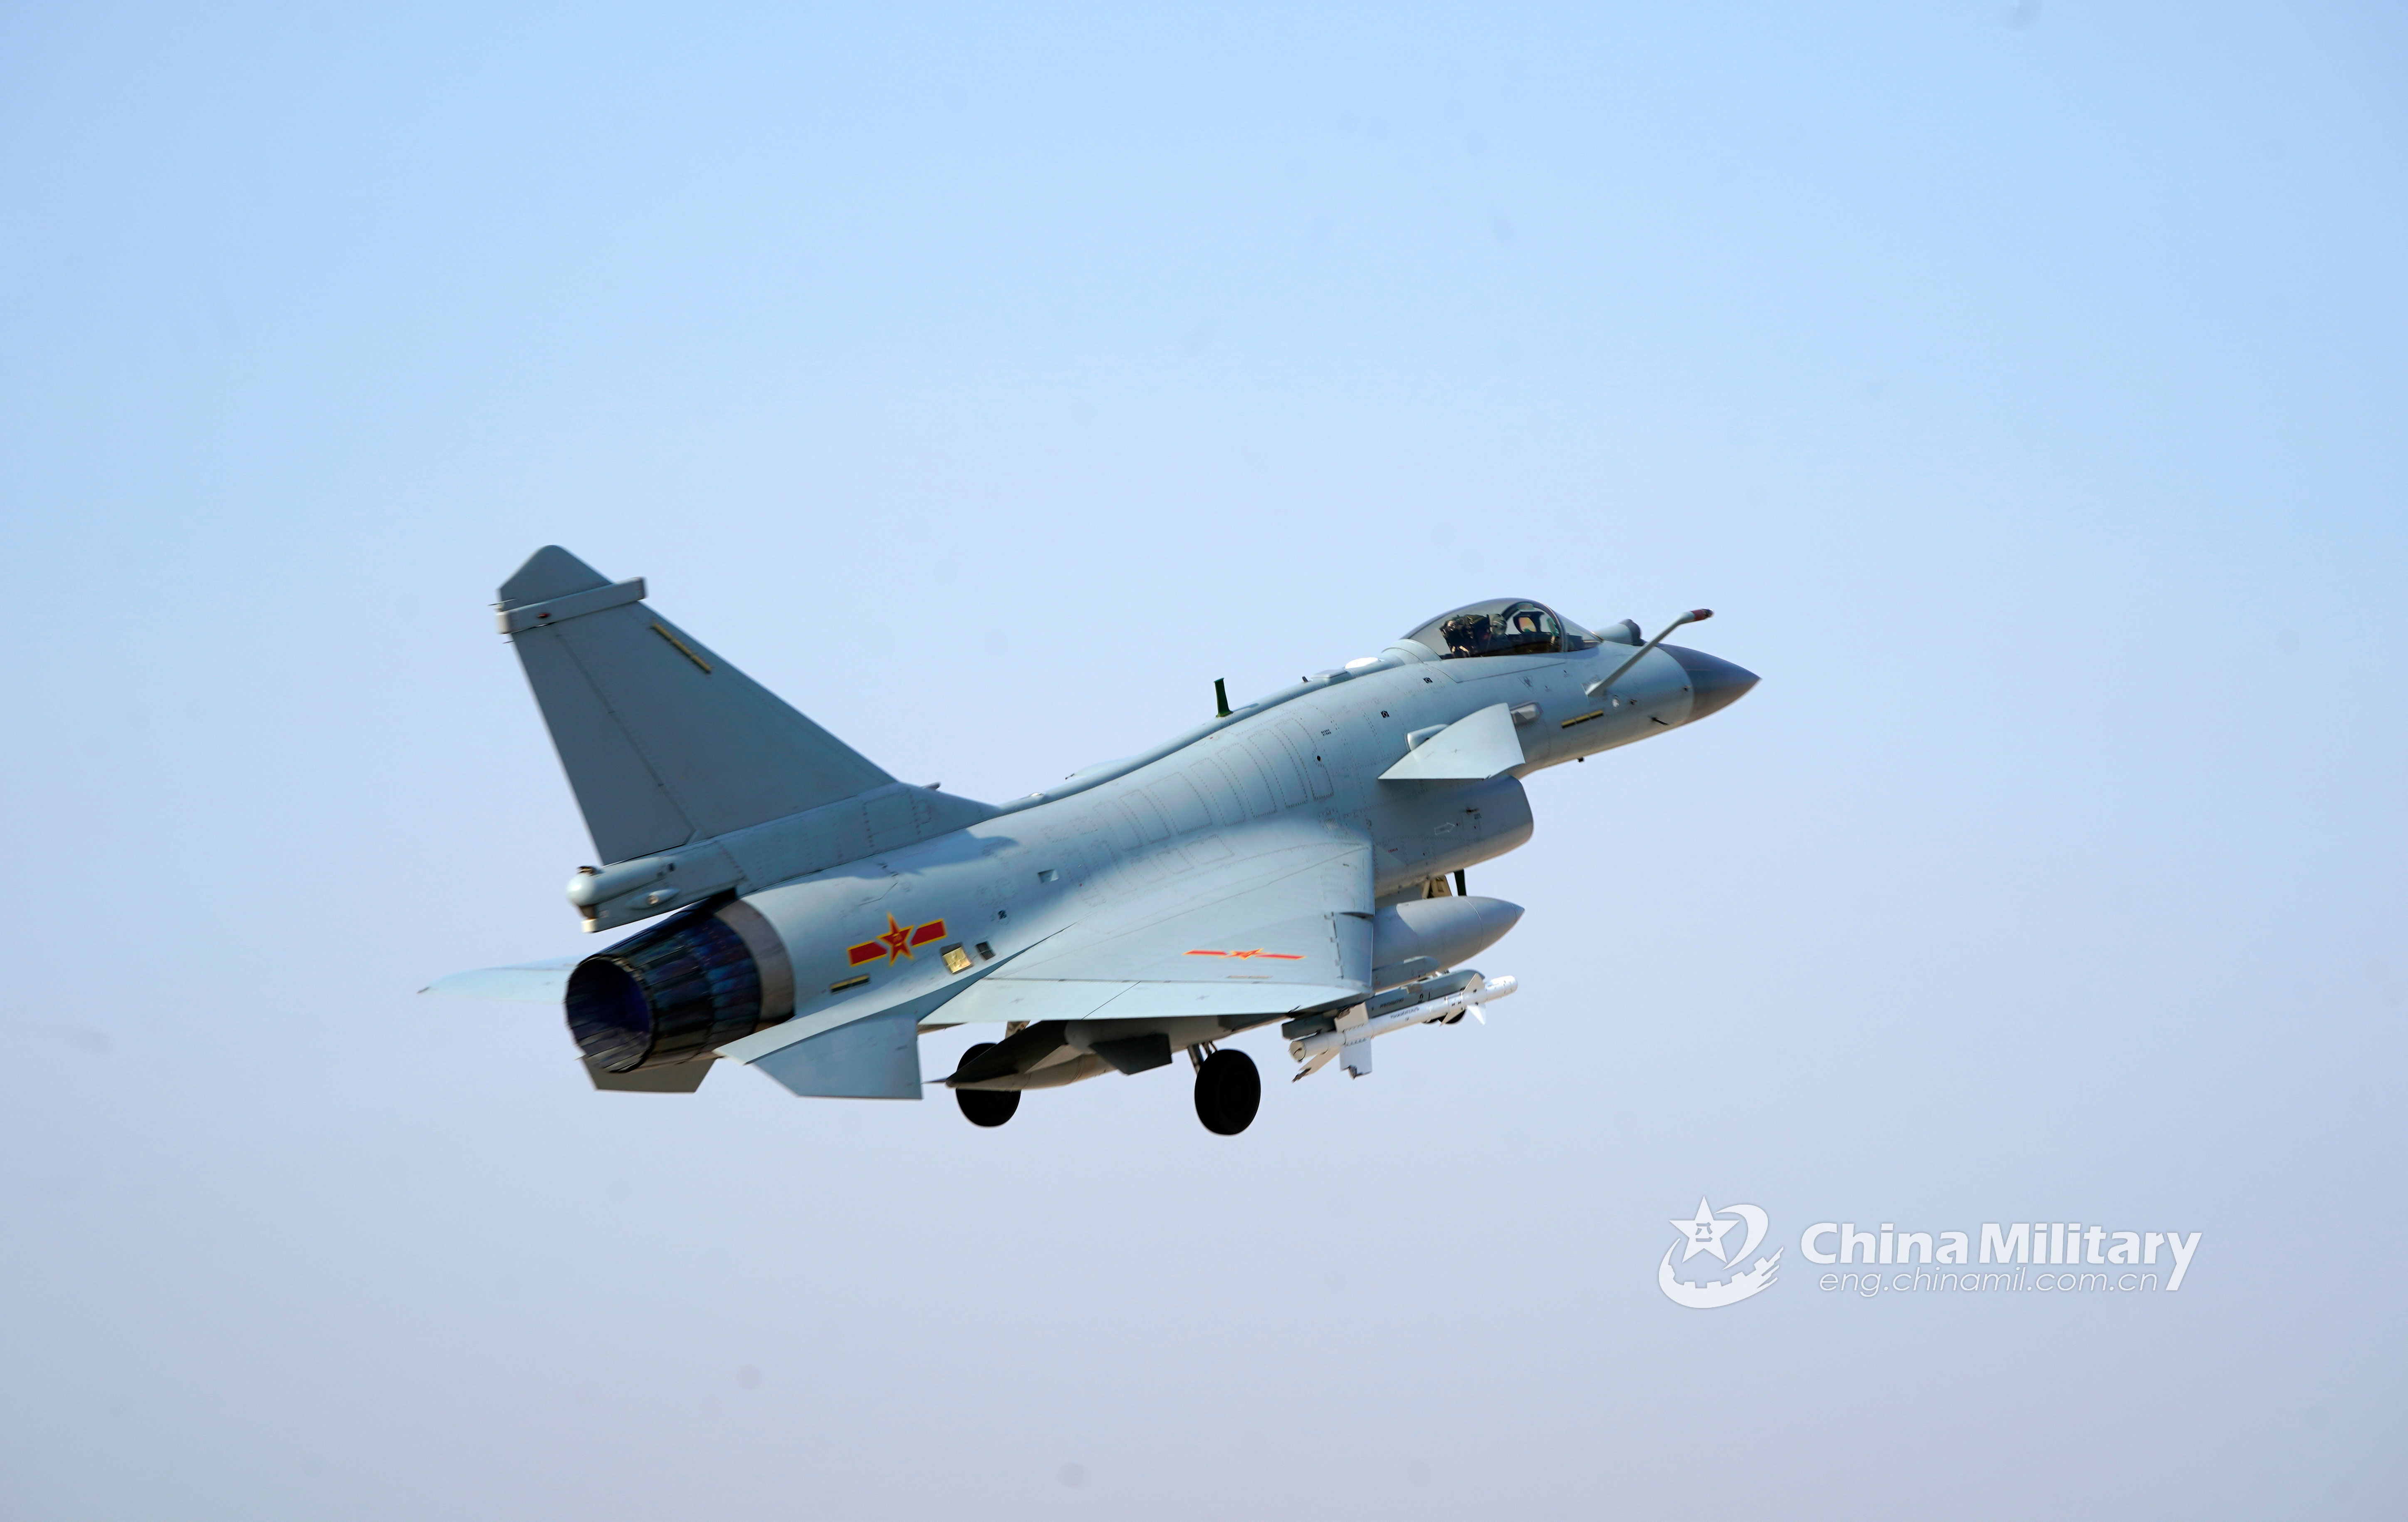 Pilots taxi J-10 fighter jets to the runway - China Military